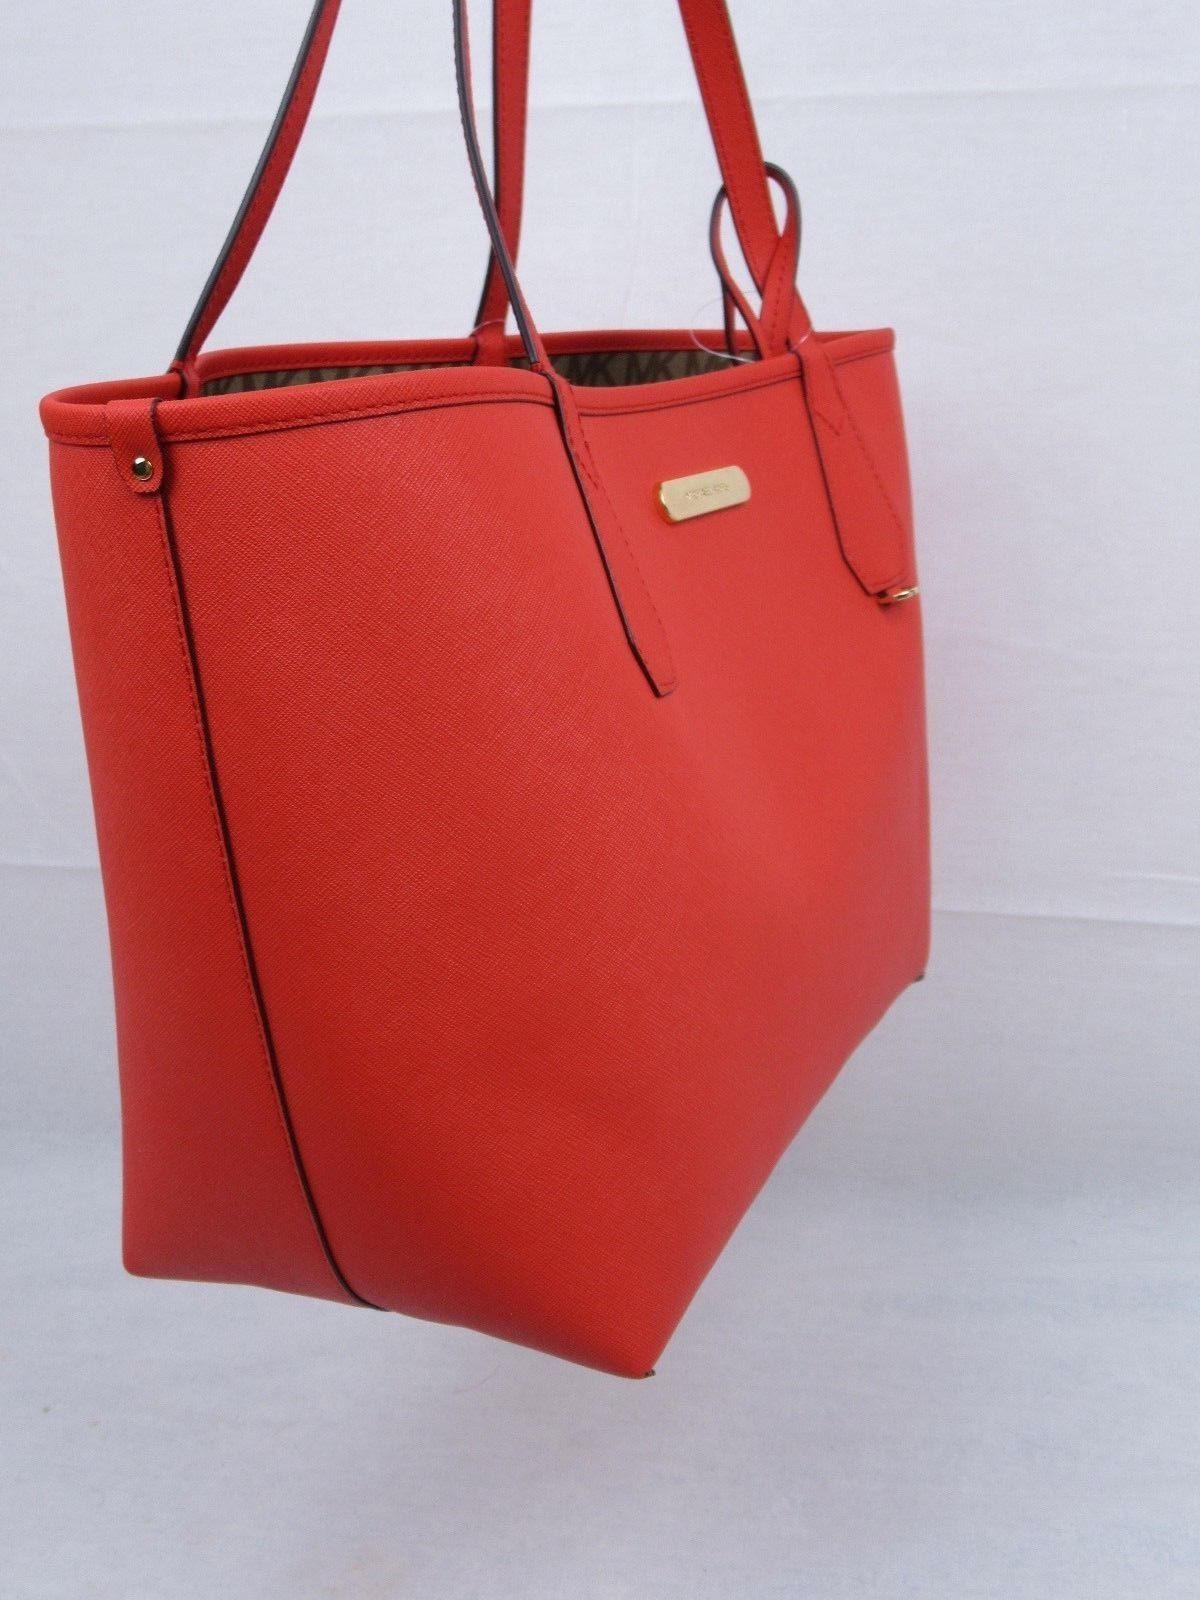 be32c6e21 NWT MICHAEL KORS SIGNATURE CANDY LARGE REVERSIBLE TOTE BAG IN BG/EB/DK  SANGRIA